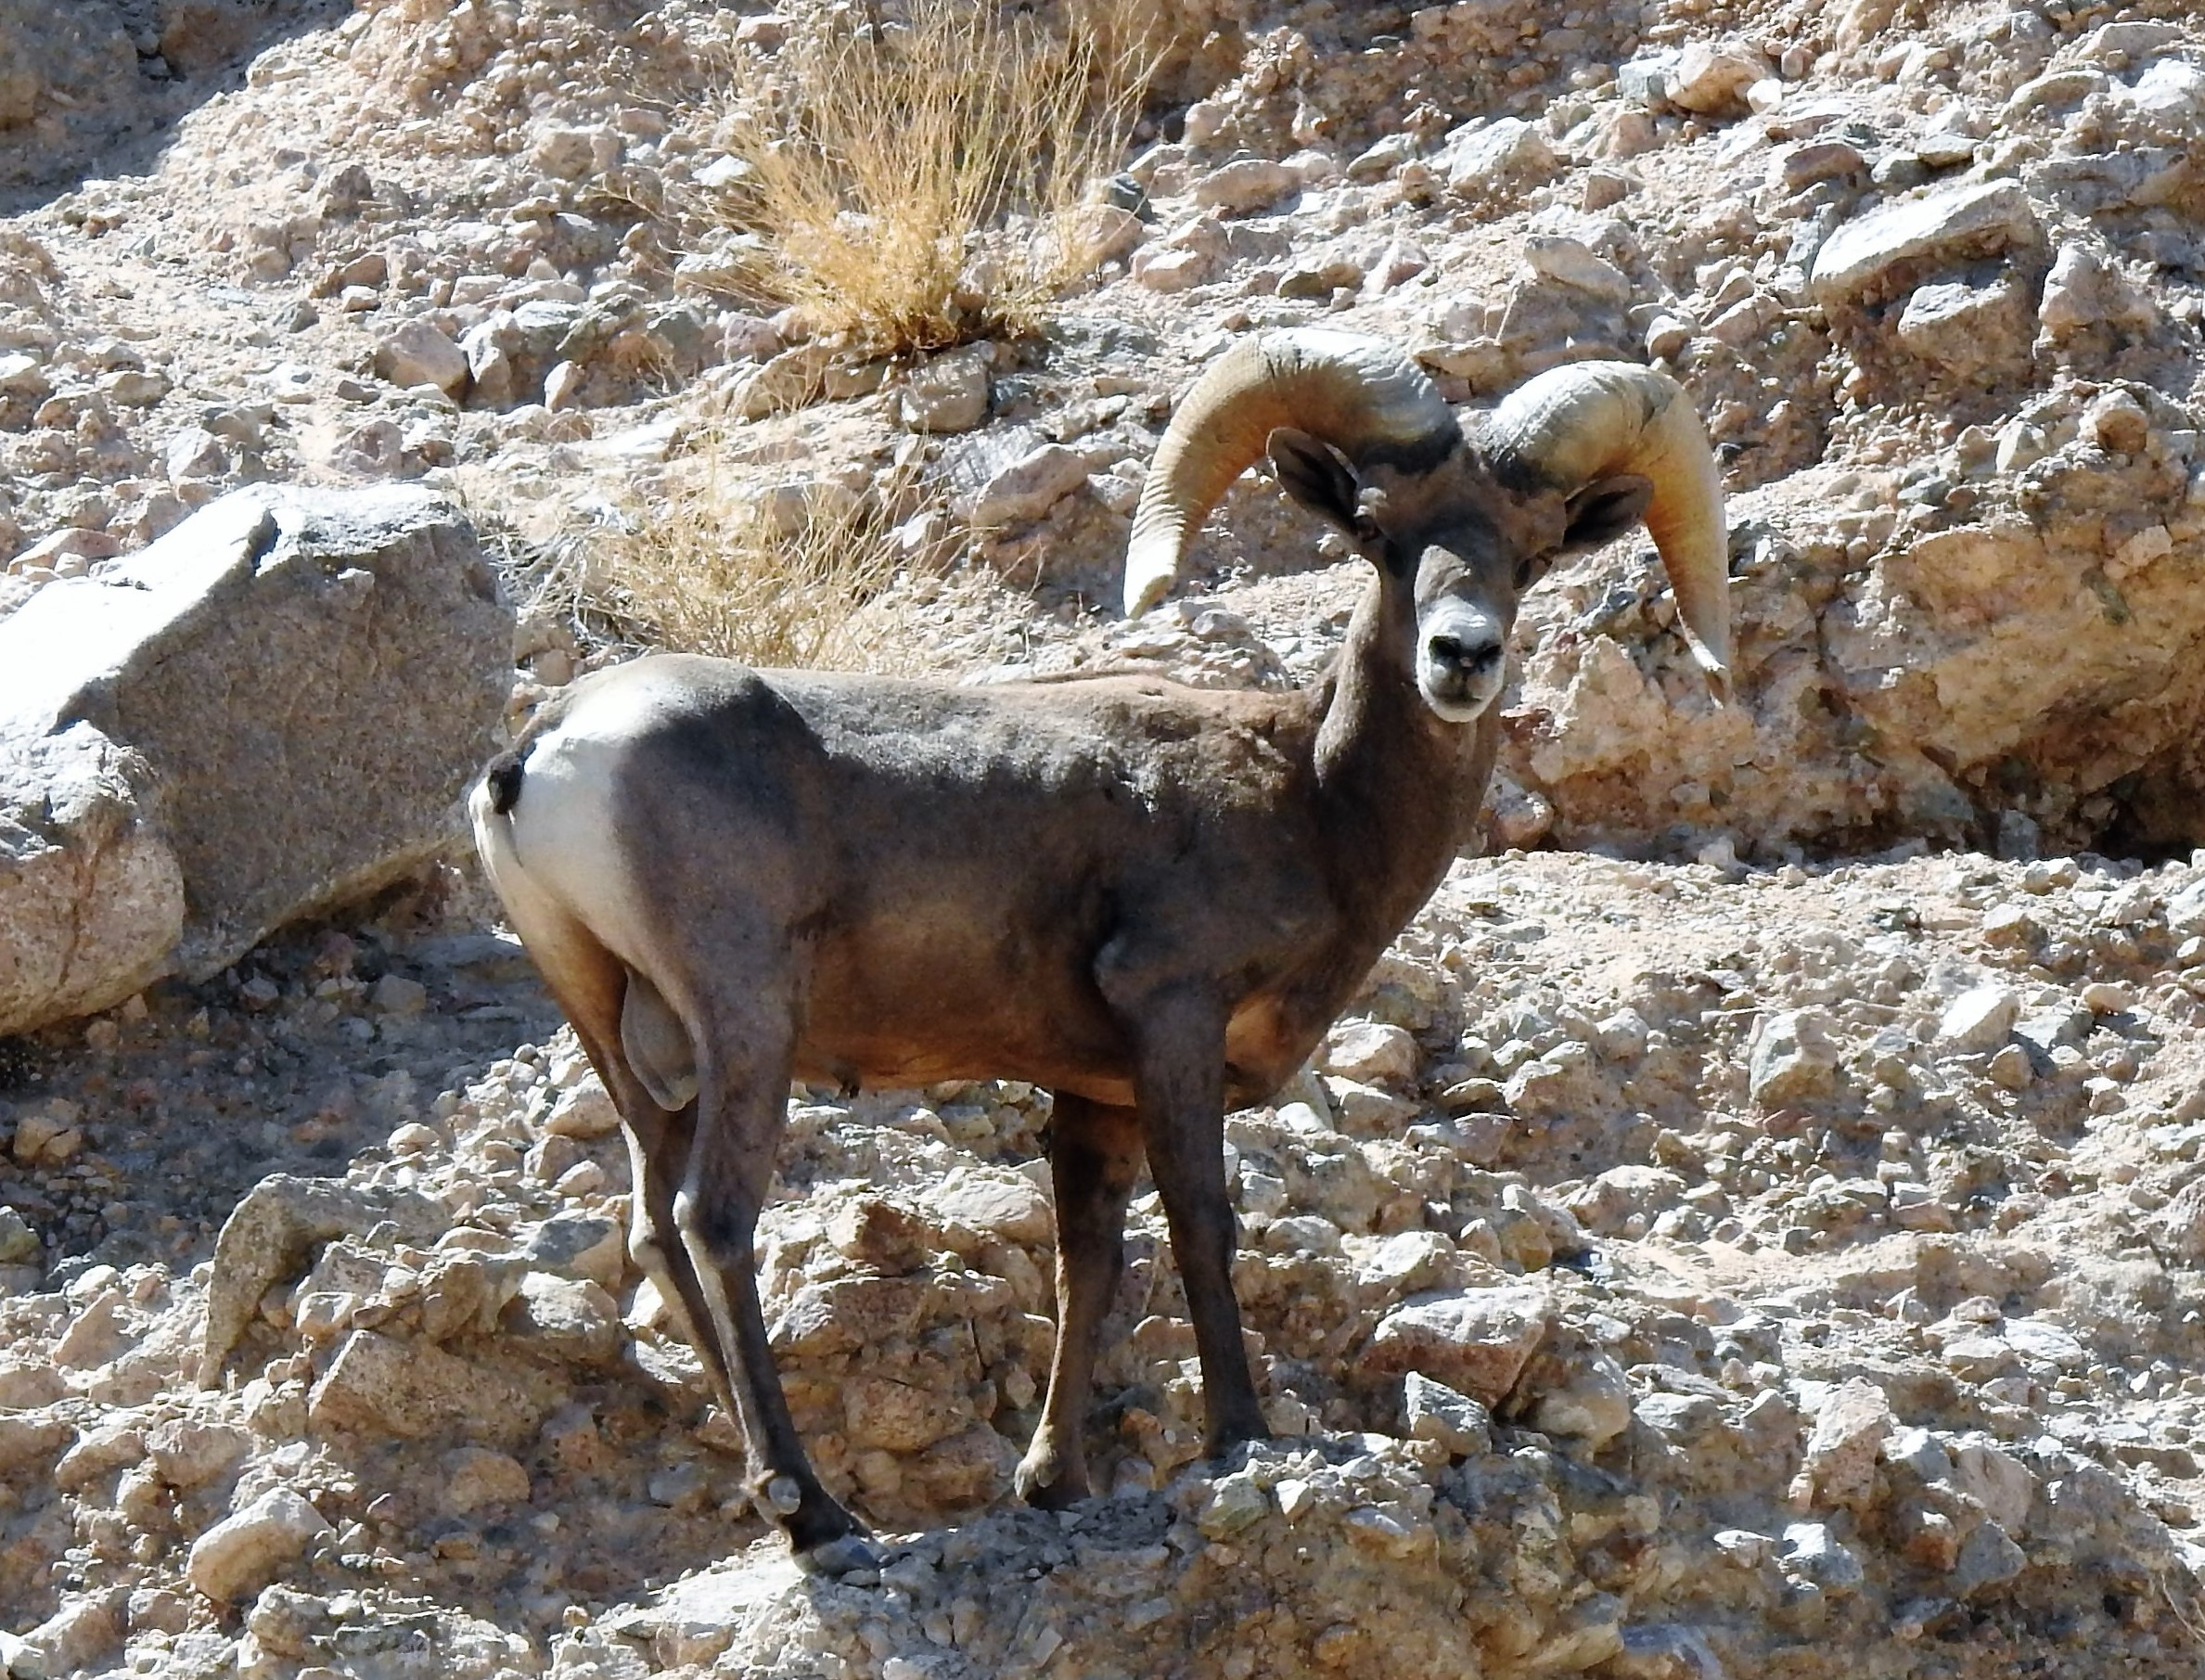 Desert bighorn sheep ram at Afton Canyon Area of Critical Environmental Concern (ACEC), within the Mojave Trails National Monument